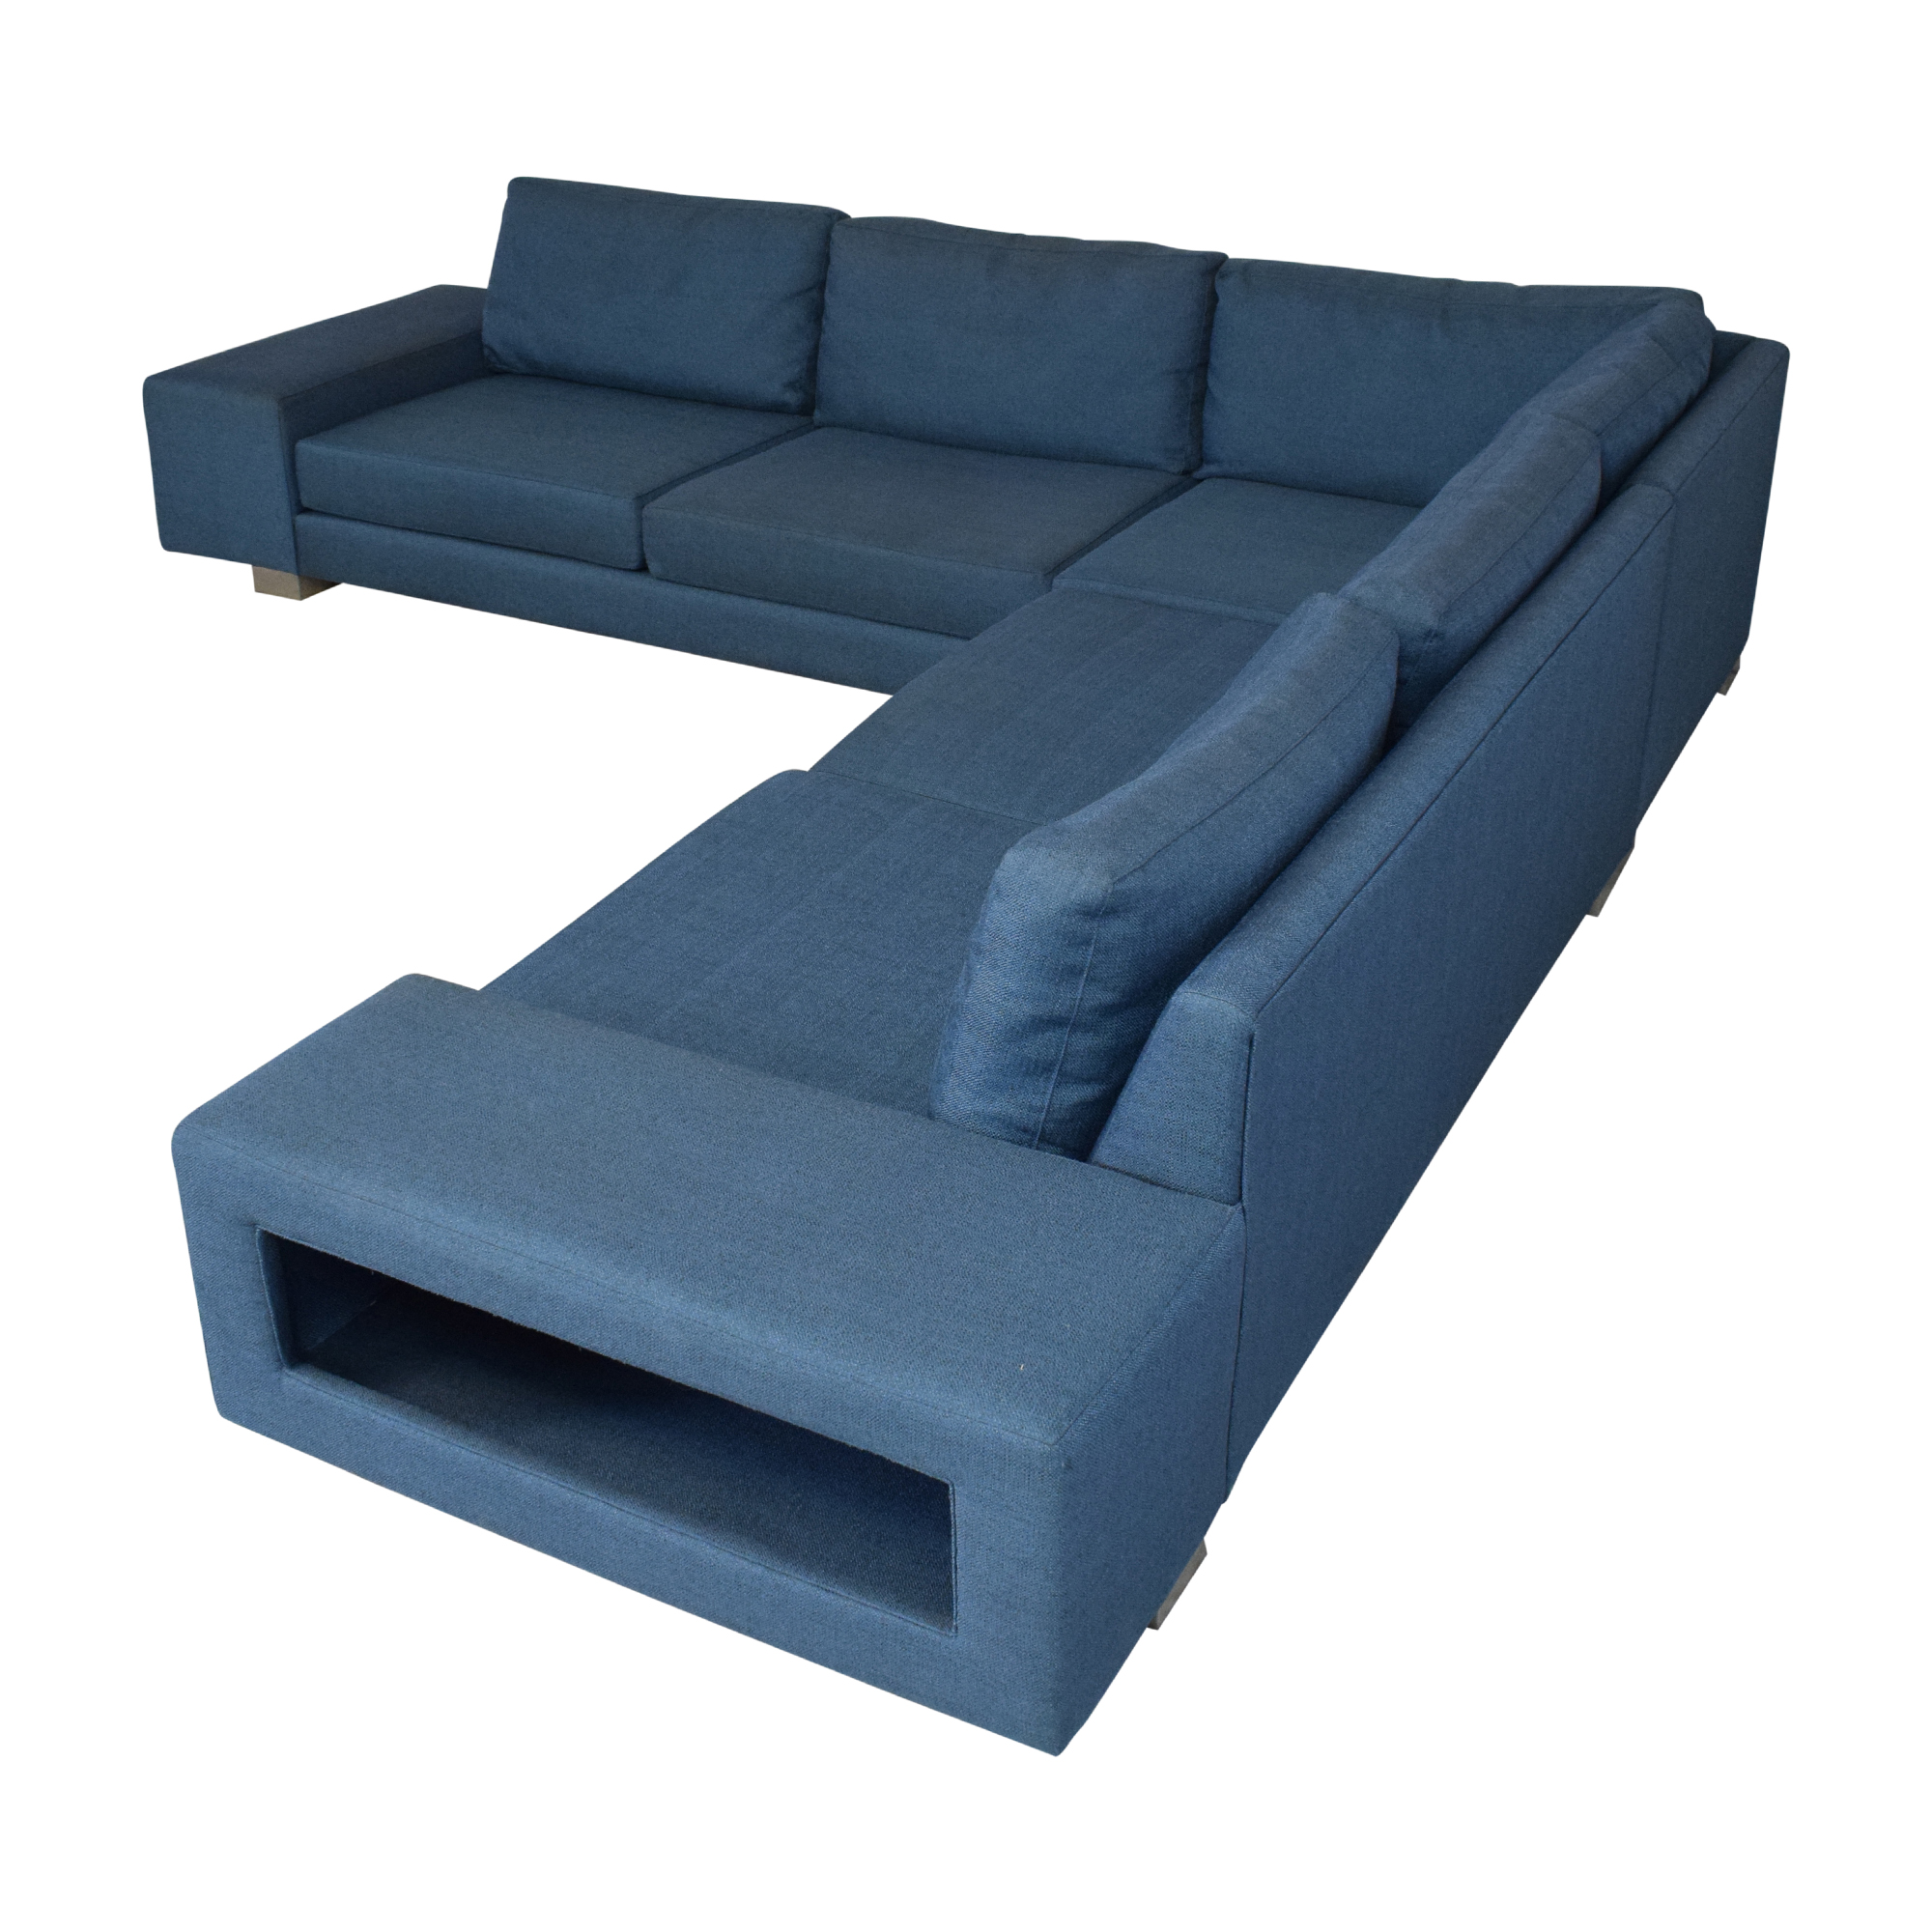 buy Viesso Strata Storage Sectional Sofa Viesso Sofas